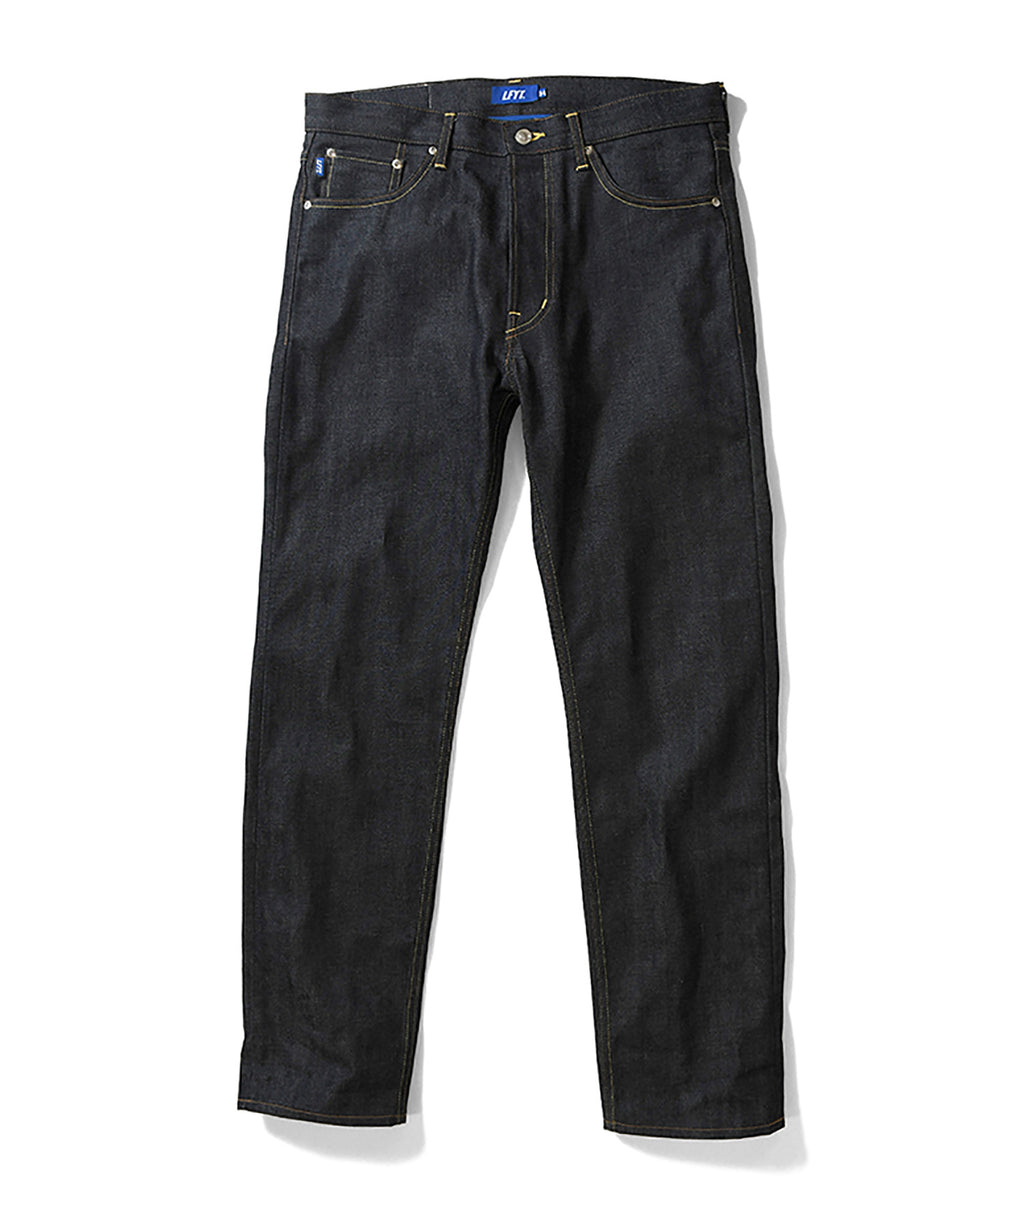 LA201102 5 POCKET SELVAGE DENIM PANTS STANDARD FIT INDIGO